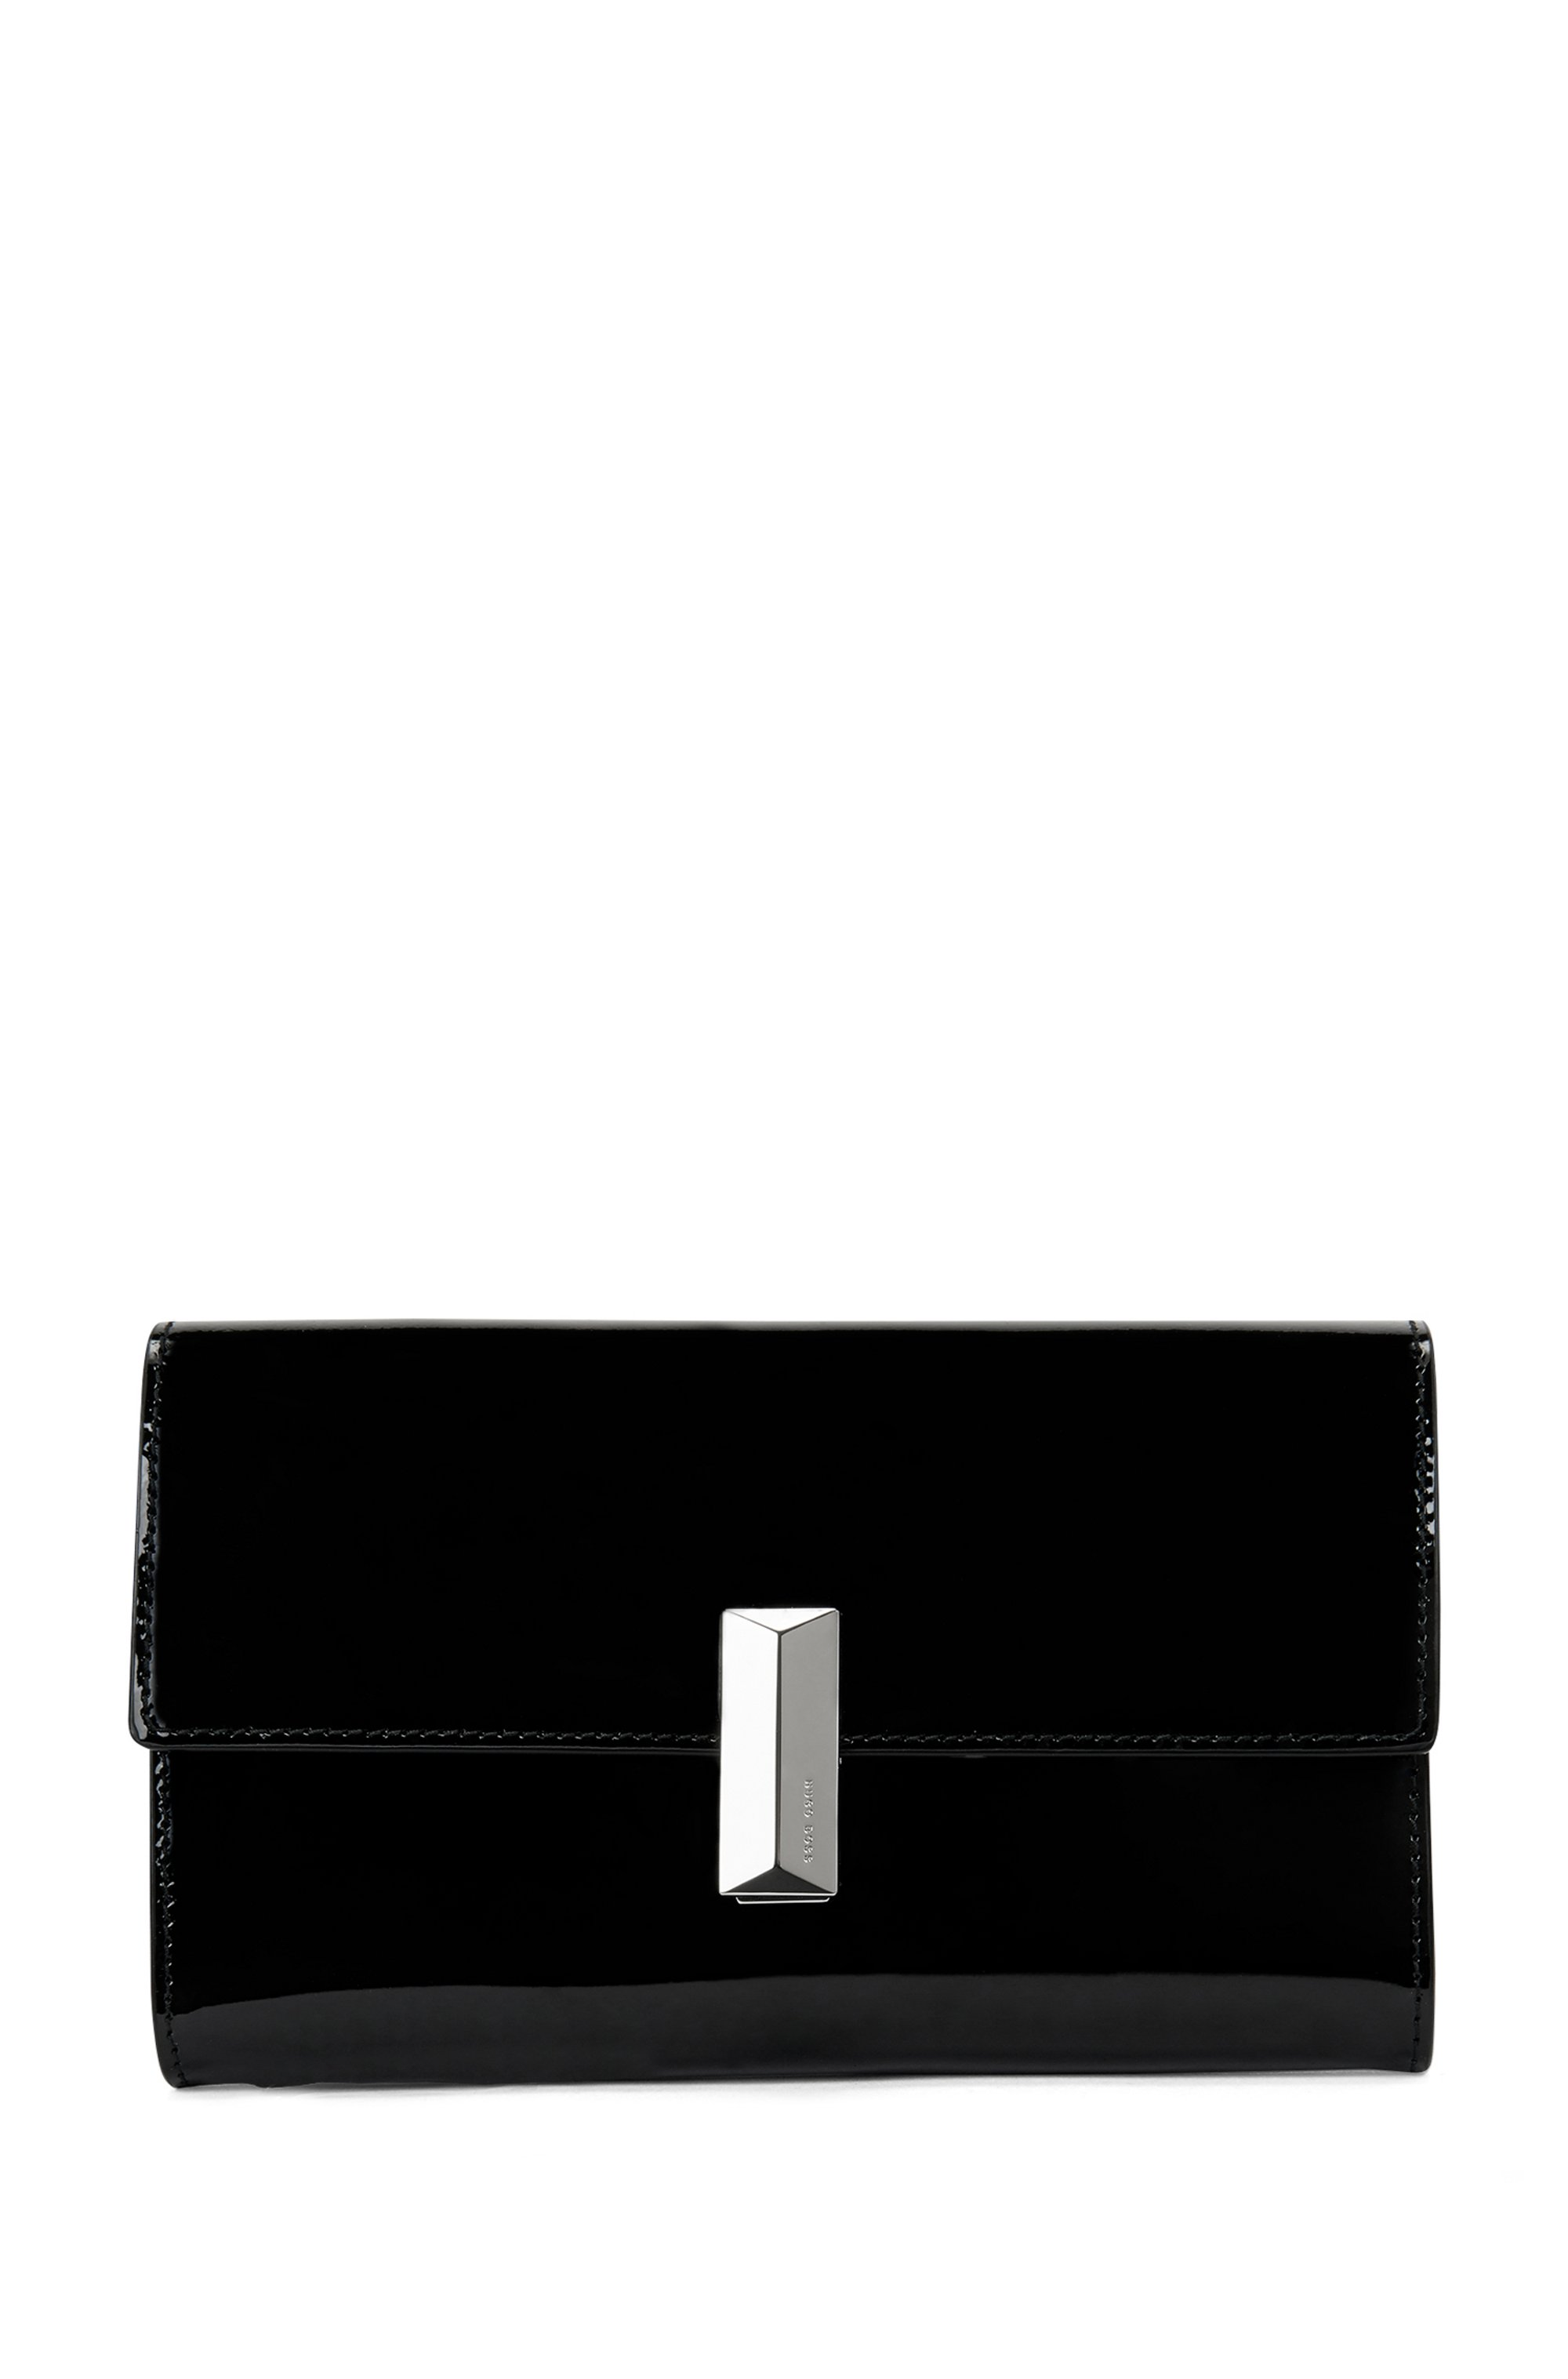 Patent-leather clutch bag with detachable wrist chain, Black